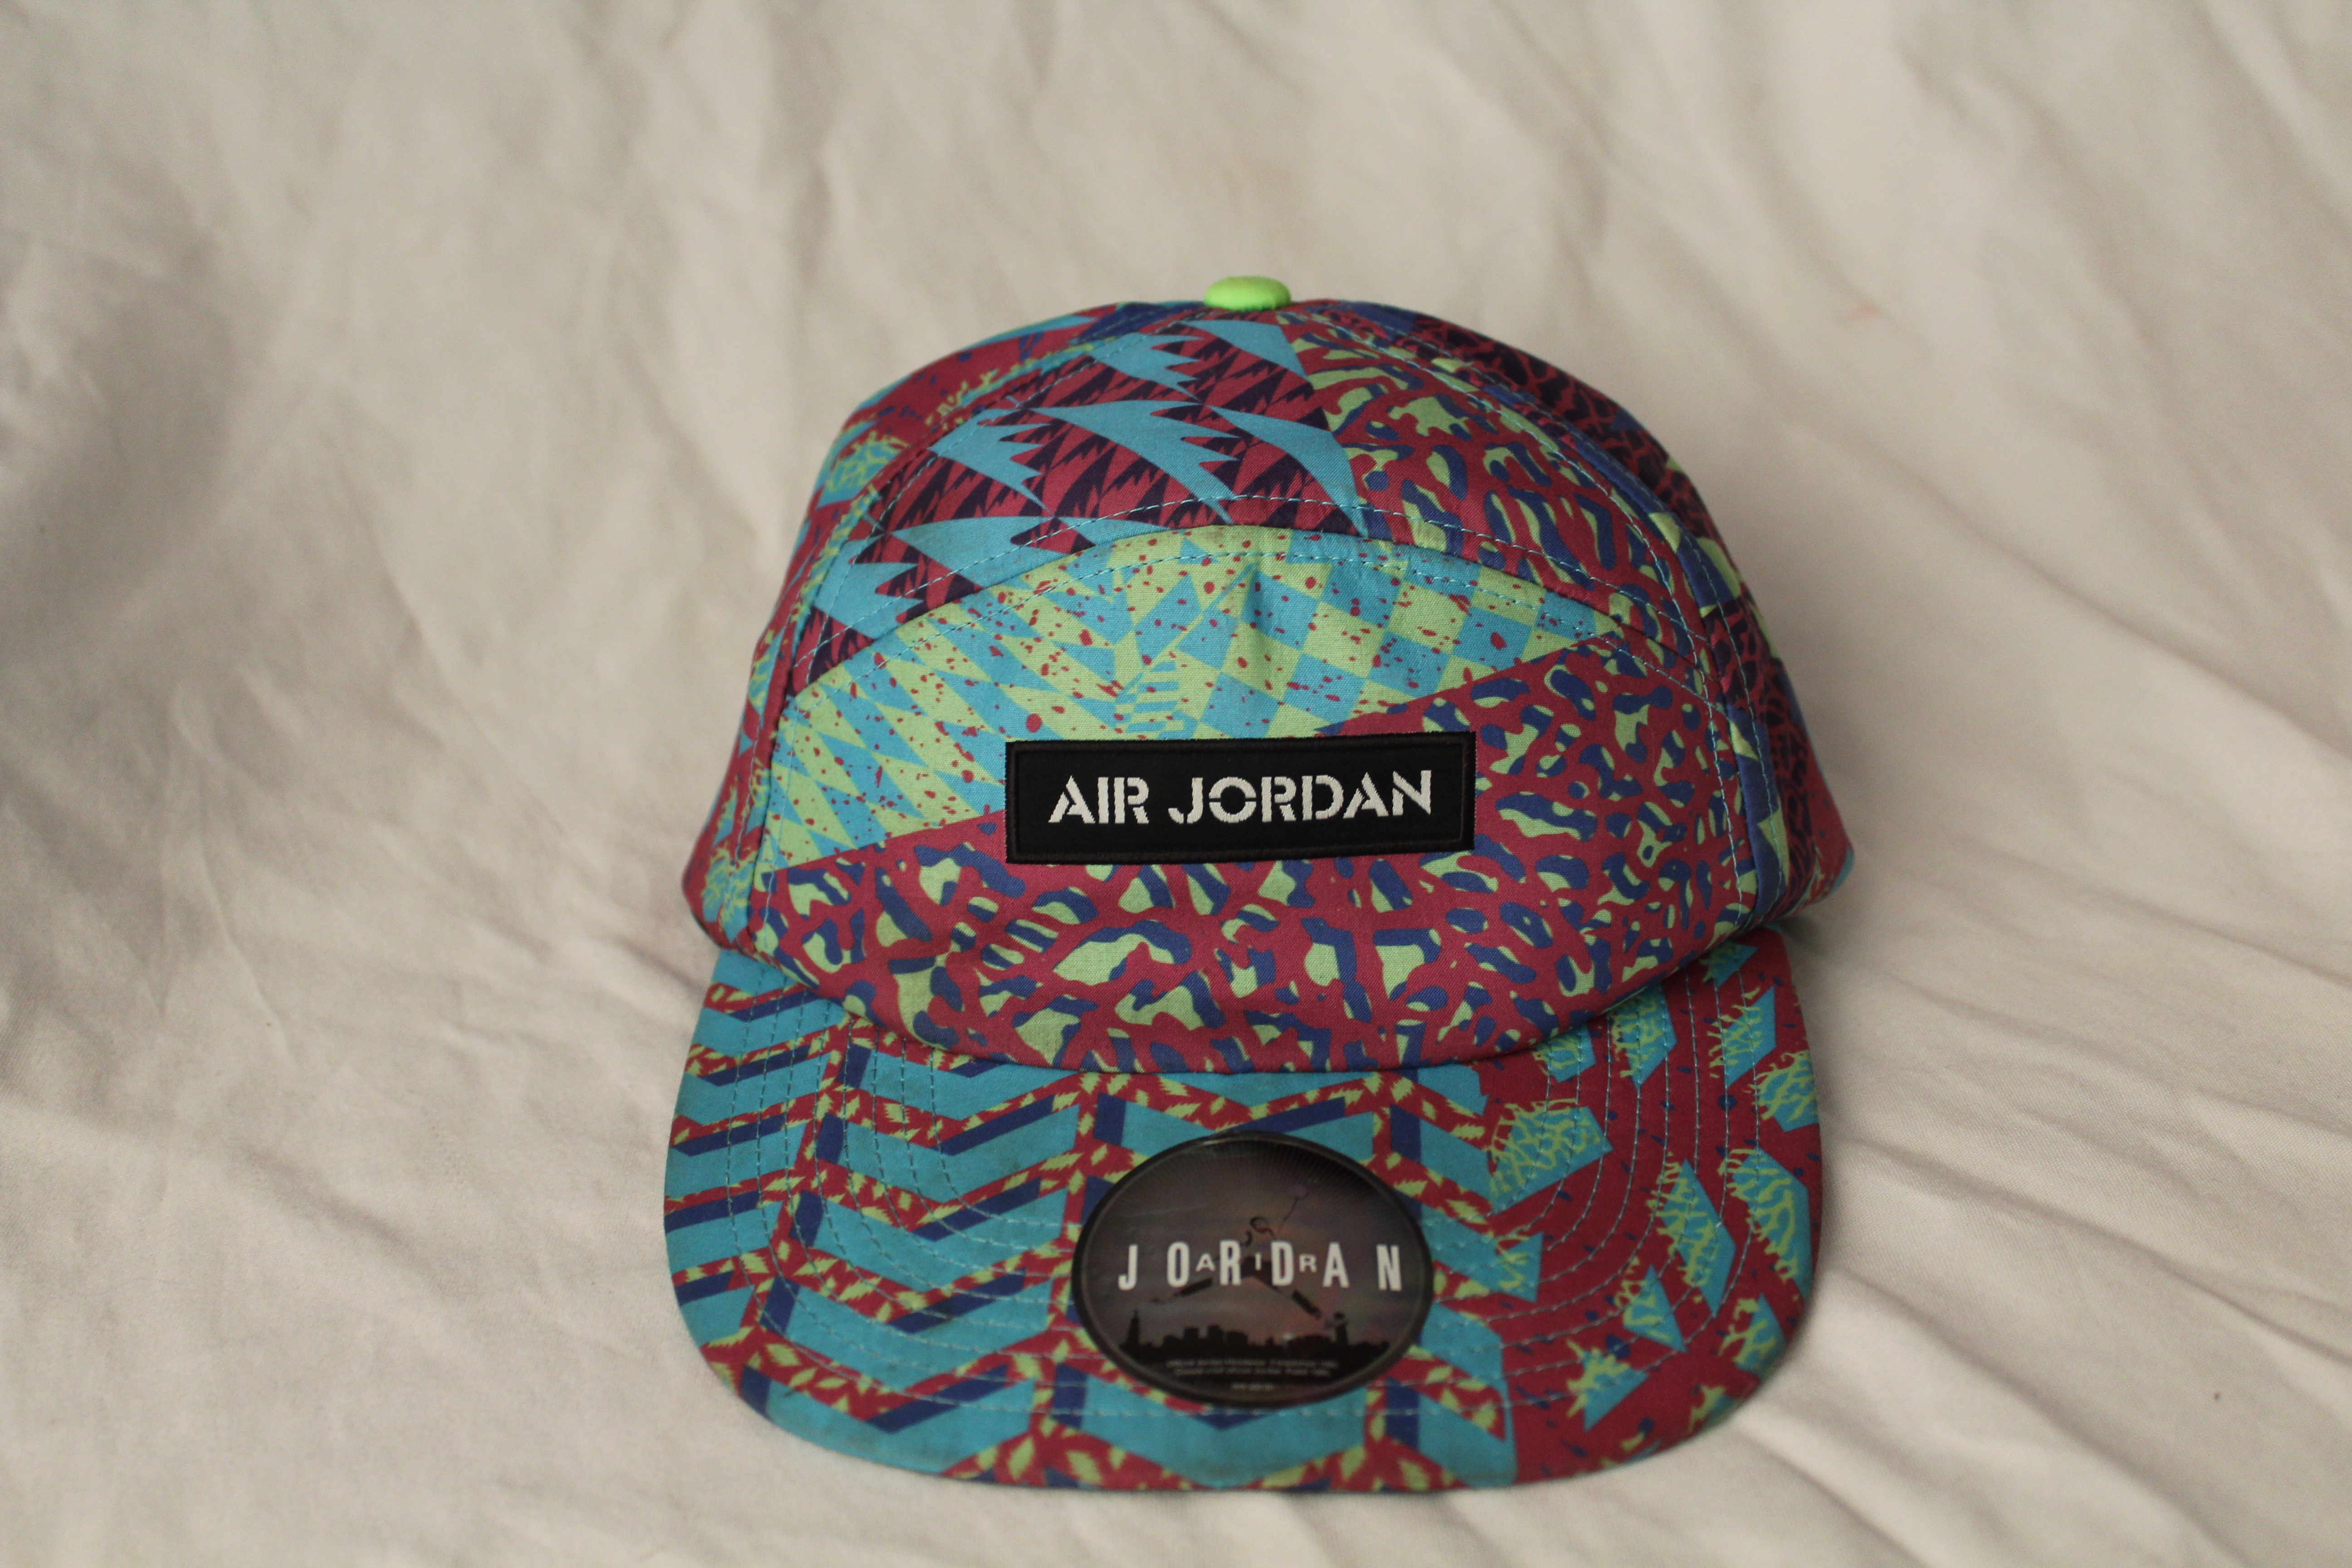 c84104ee7a0 Jordan Brand. rare Nike Air Jordan Retro Bel Air Fresh Prince 5 Panel  Adjustable Hat ...